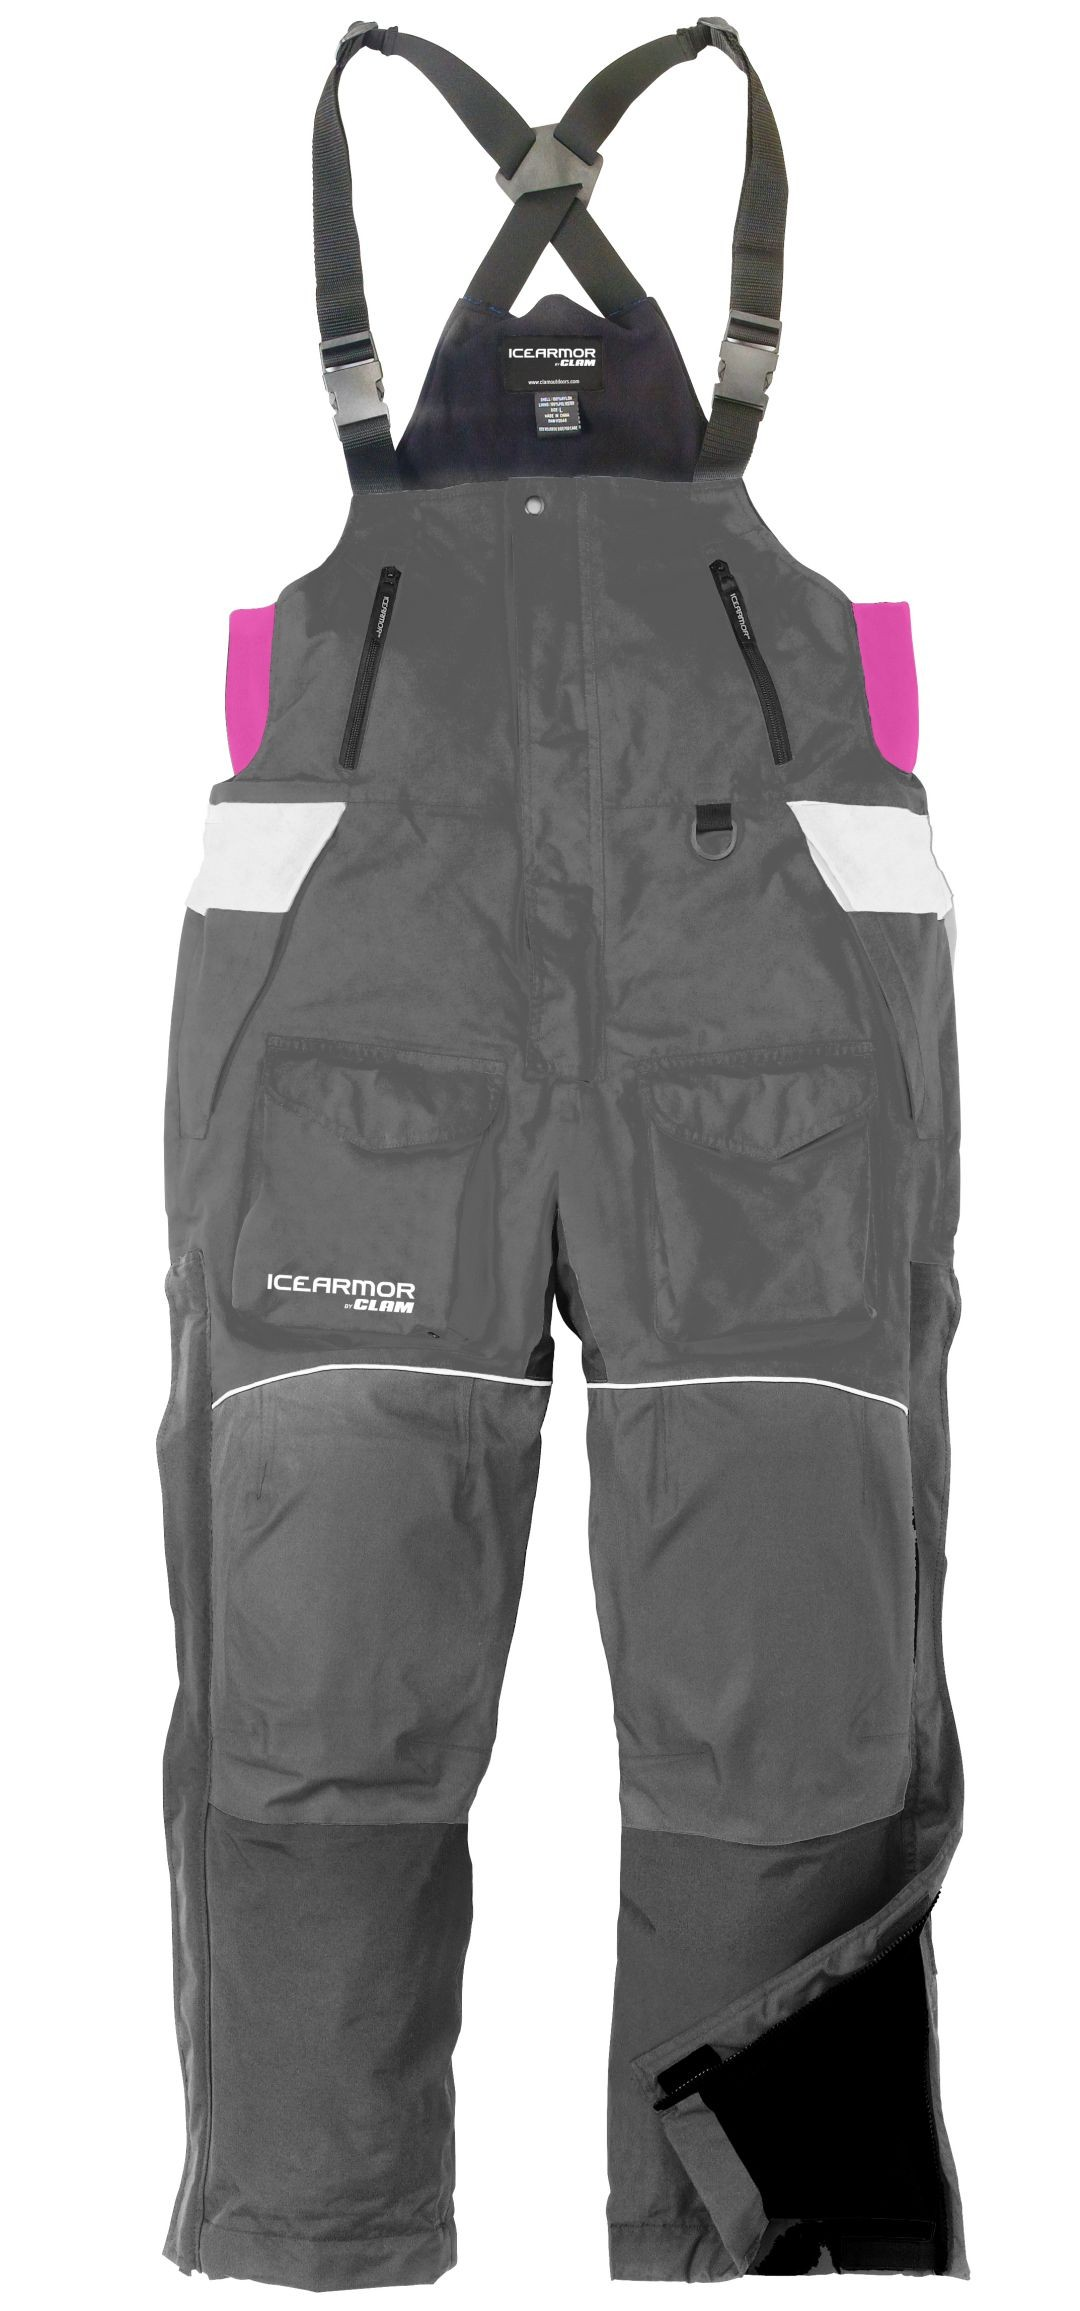 New Clam Outdoors IceArmor Womens Lift 300D Bib Grey White Pink by Clam Outdoors